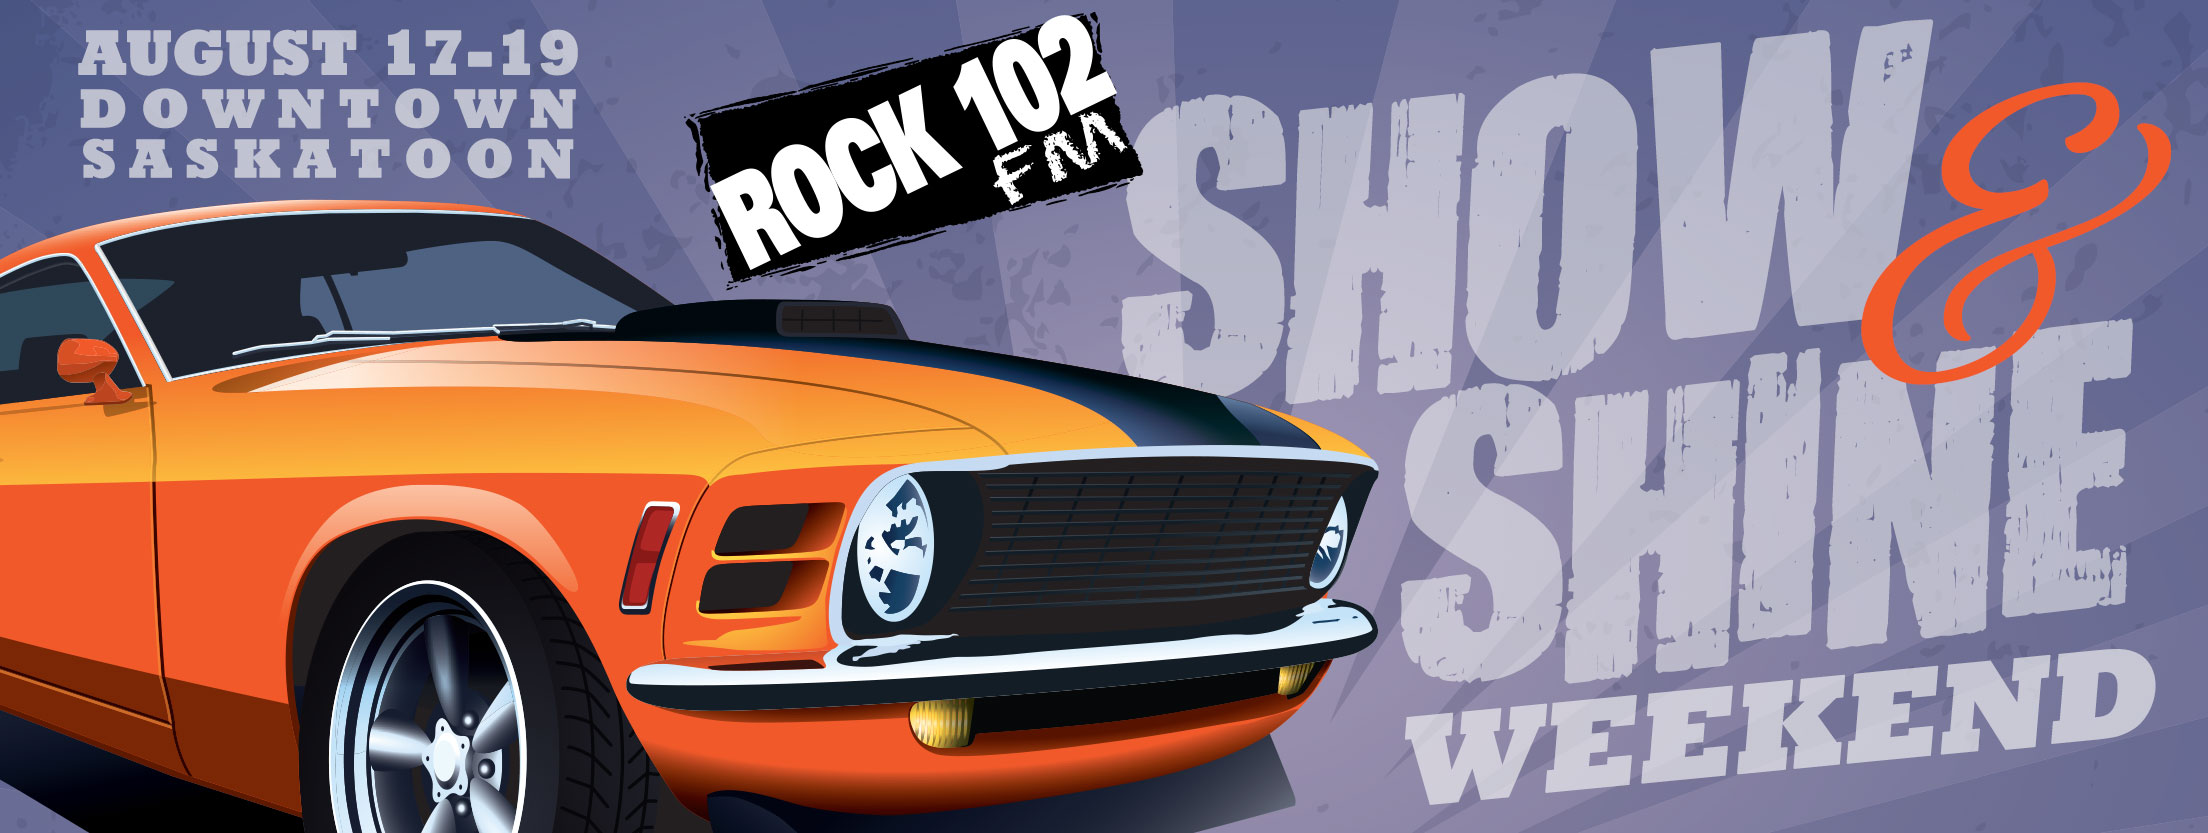 Rock 102 Show & Shine Weekend